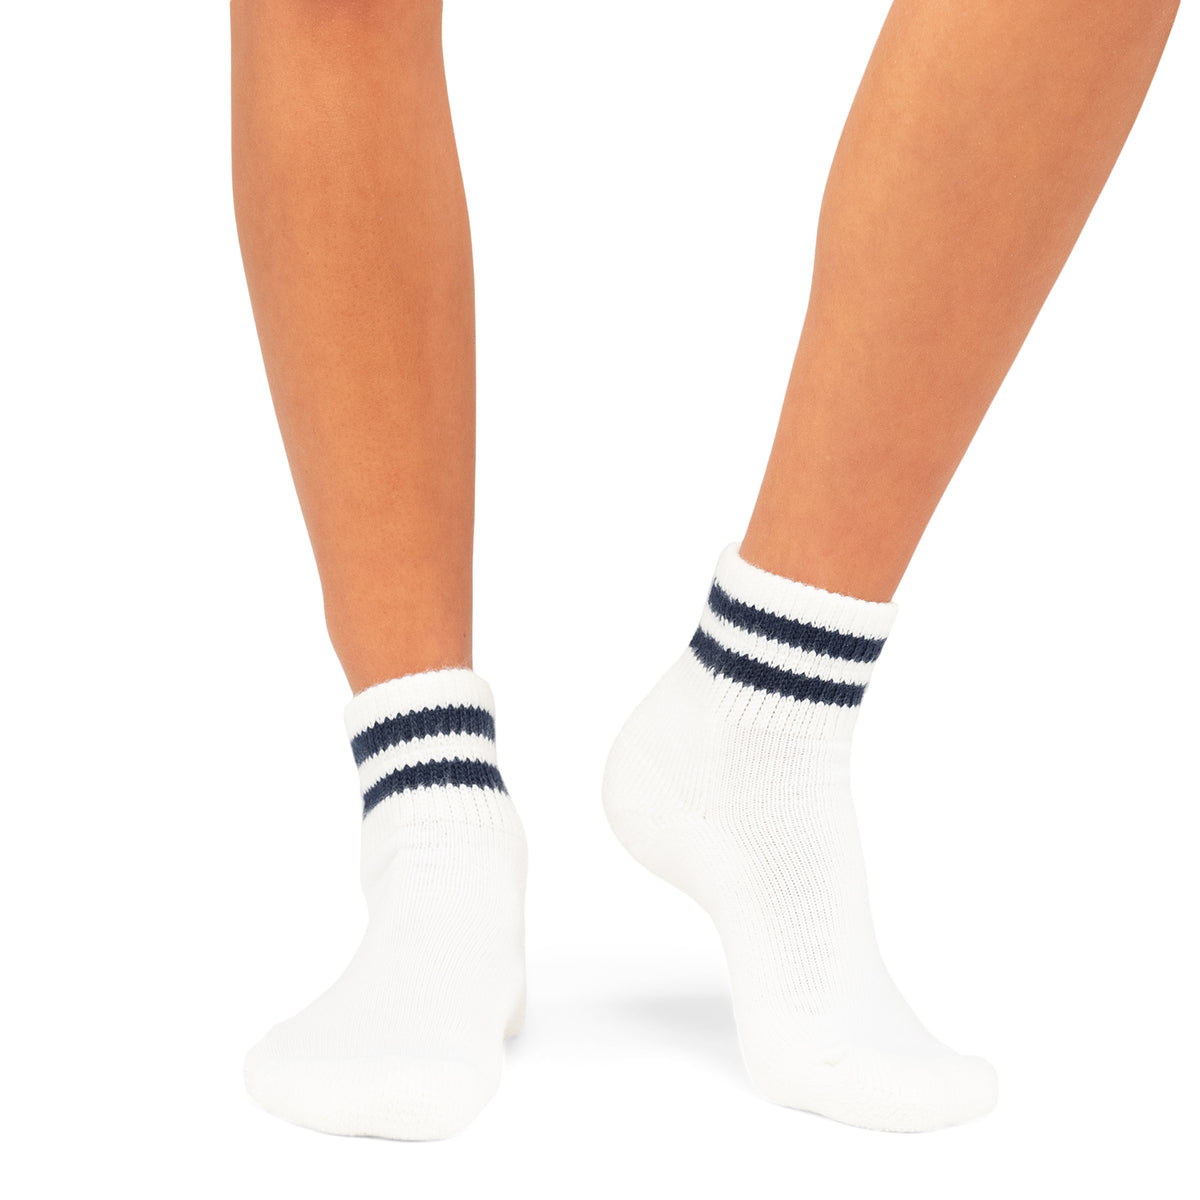 Postal Socks - Unisex Mini-crew